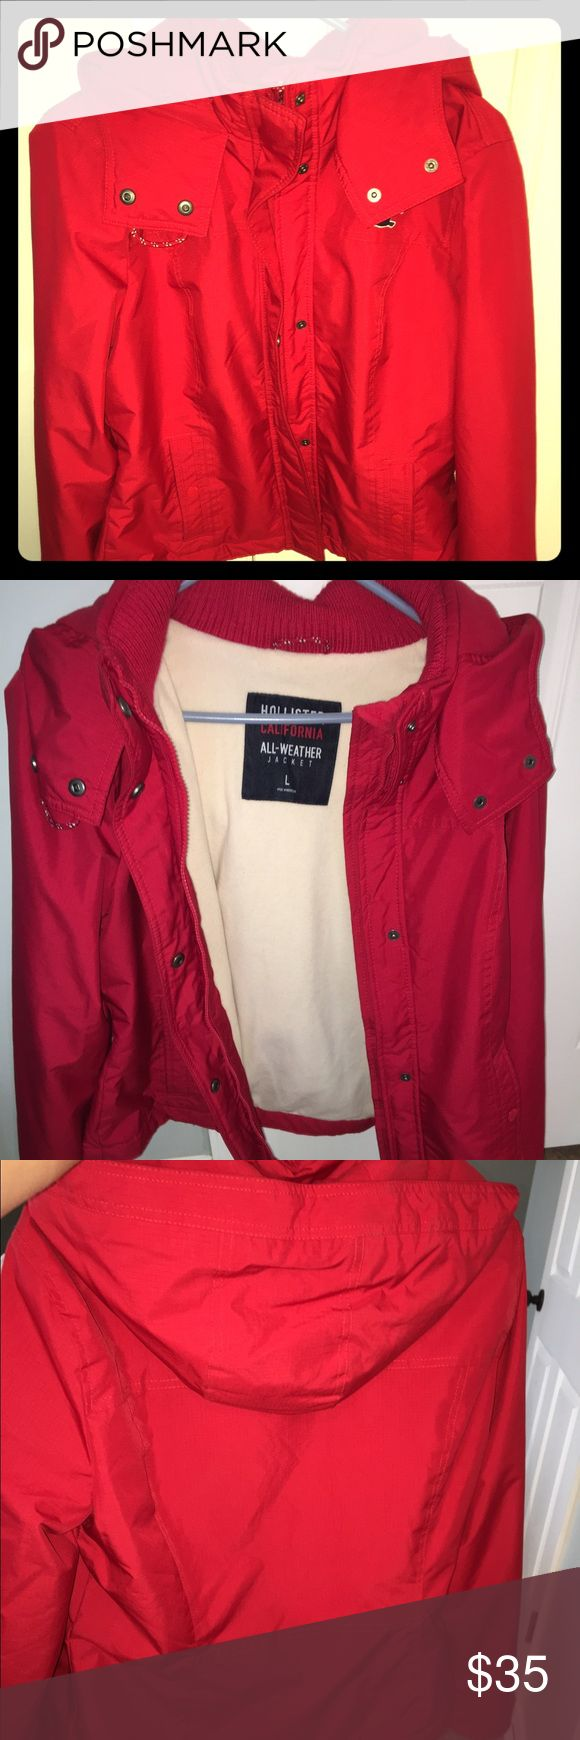 Red Women's/ Girls Hollister Coat Great condition, missing a button on the pocket to snap the pocket closed. Not noticeable at all Hollister Jackets & Coats Puffers